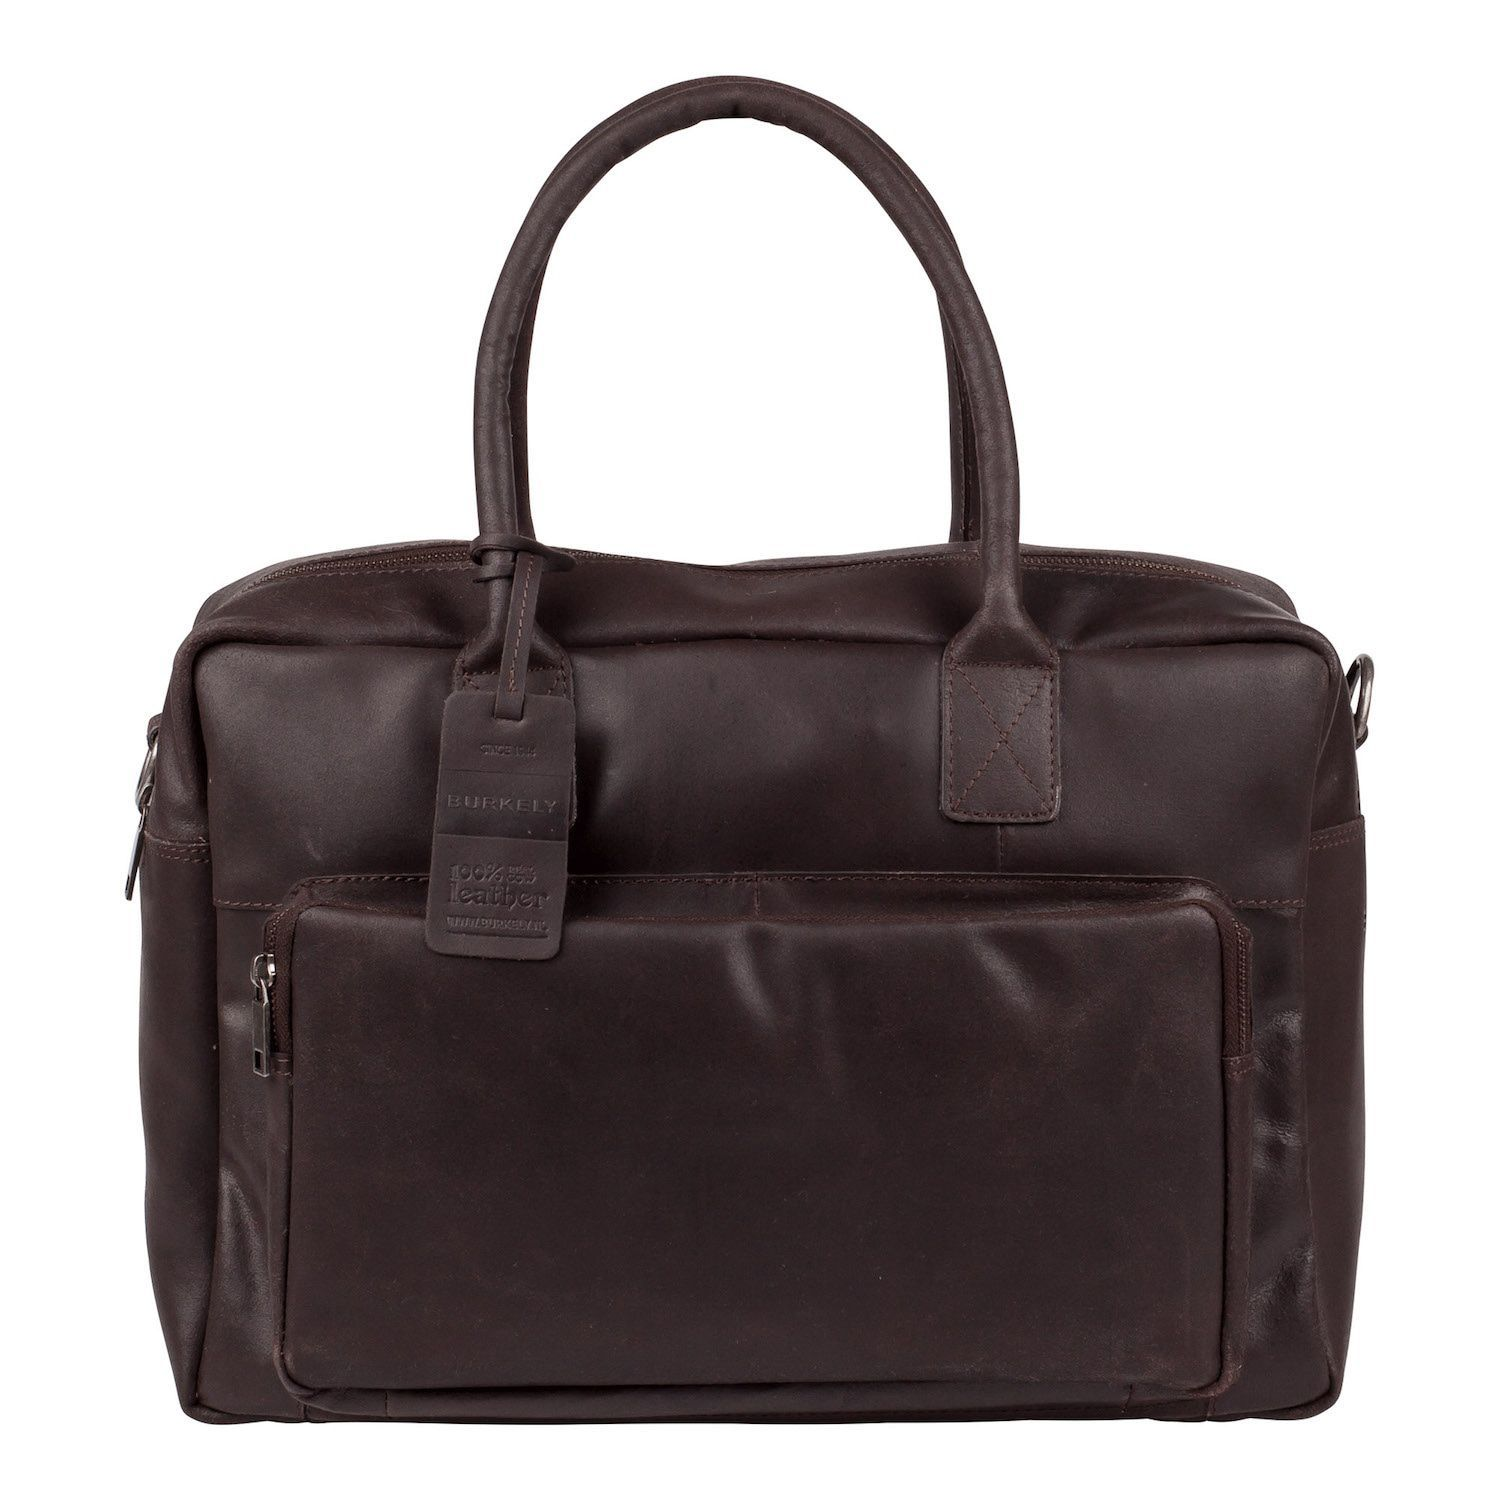 Laptoptas Burkely Mitch Vintage Businessbag Dark Brown 14 inch